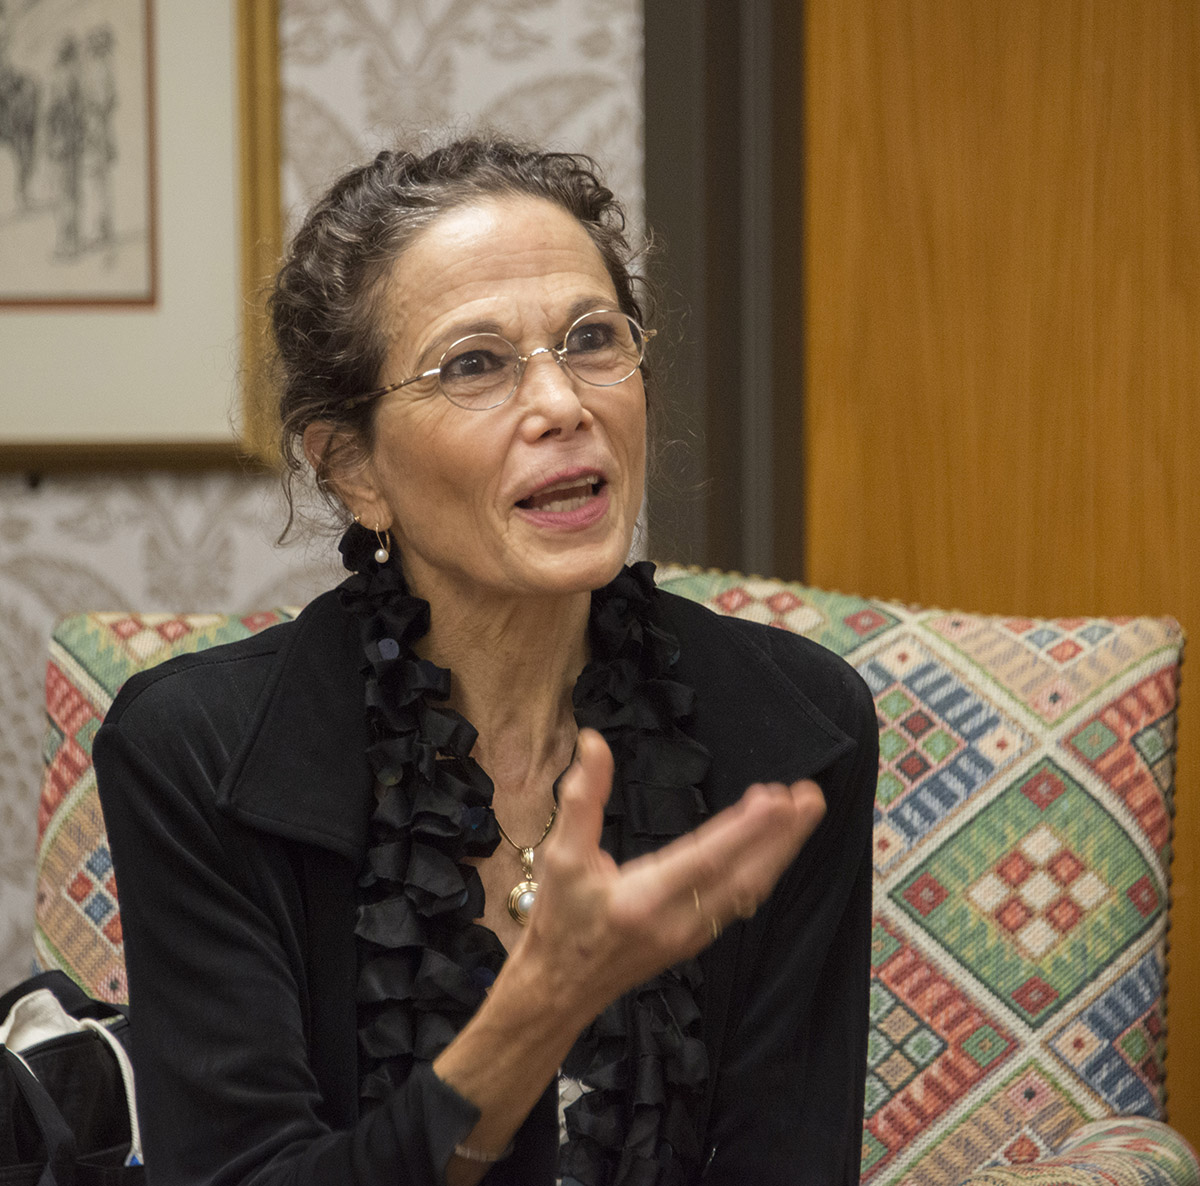 Julia Alvarez speaks with students during a visit to the Ransom Center in March 2014. Photo by Pete Smith.